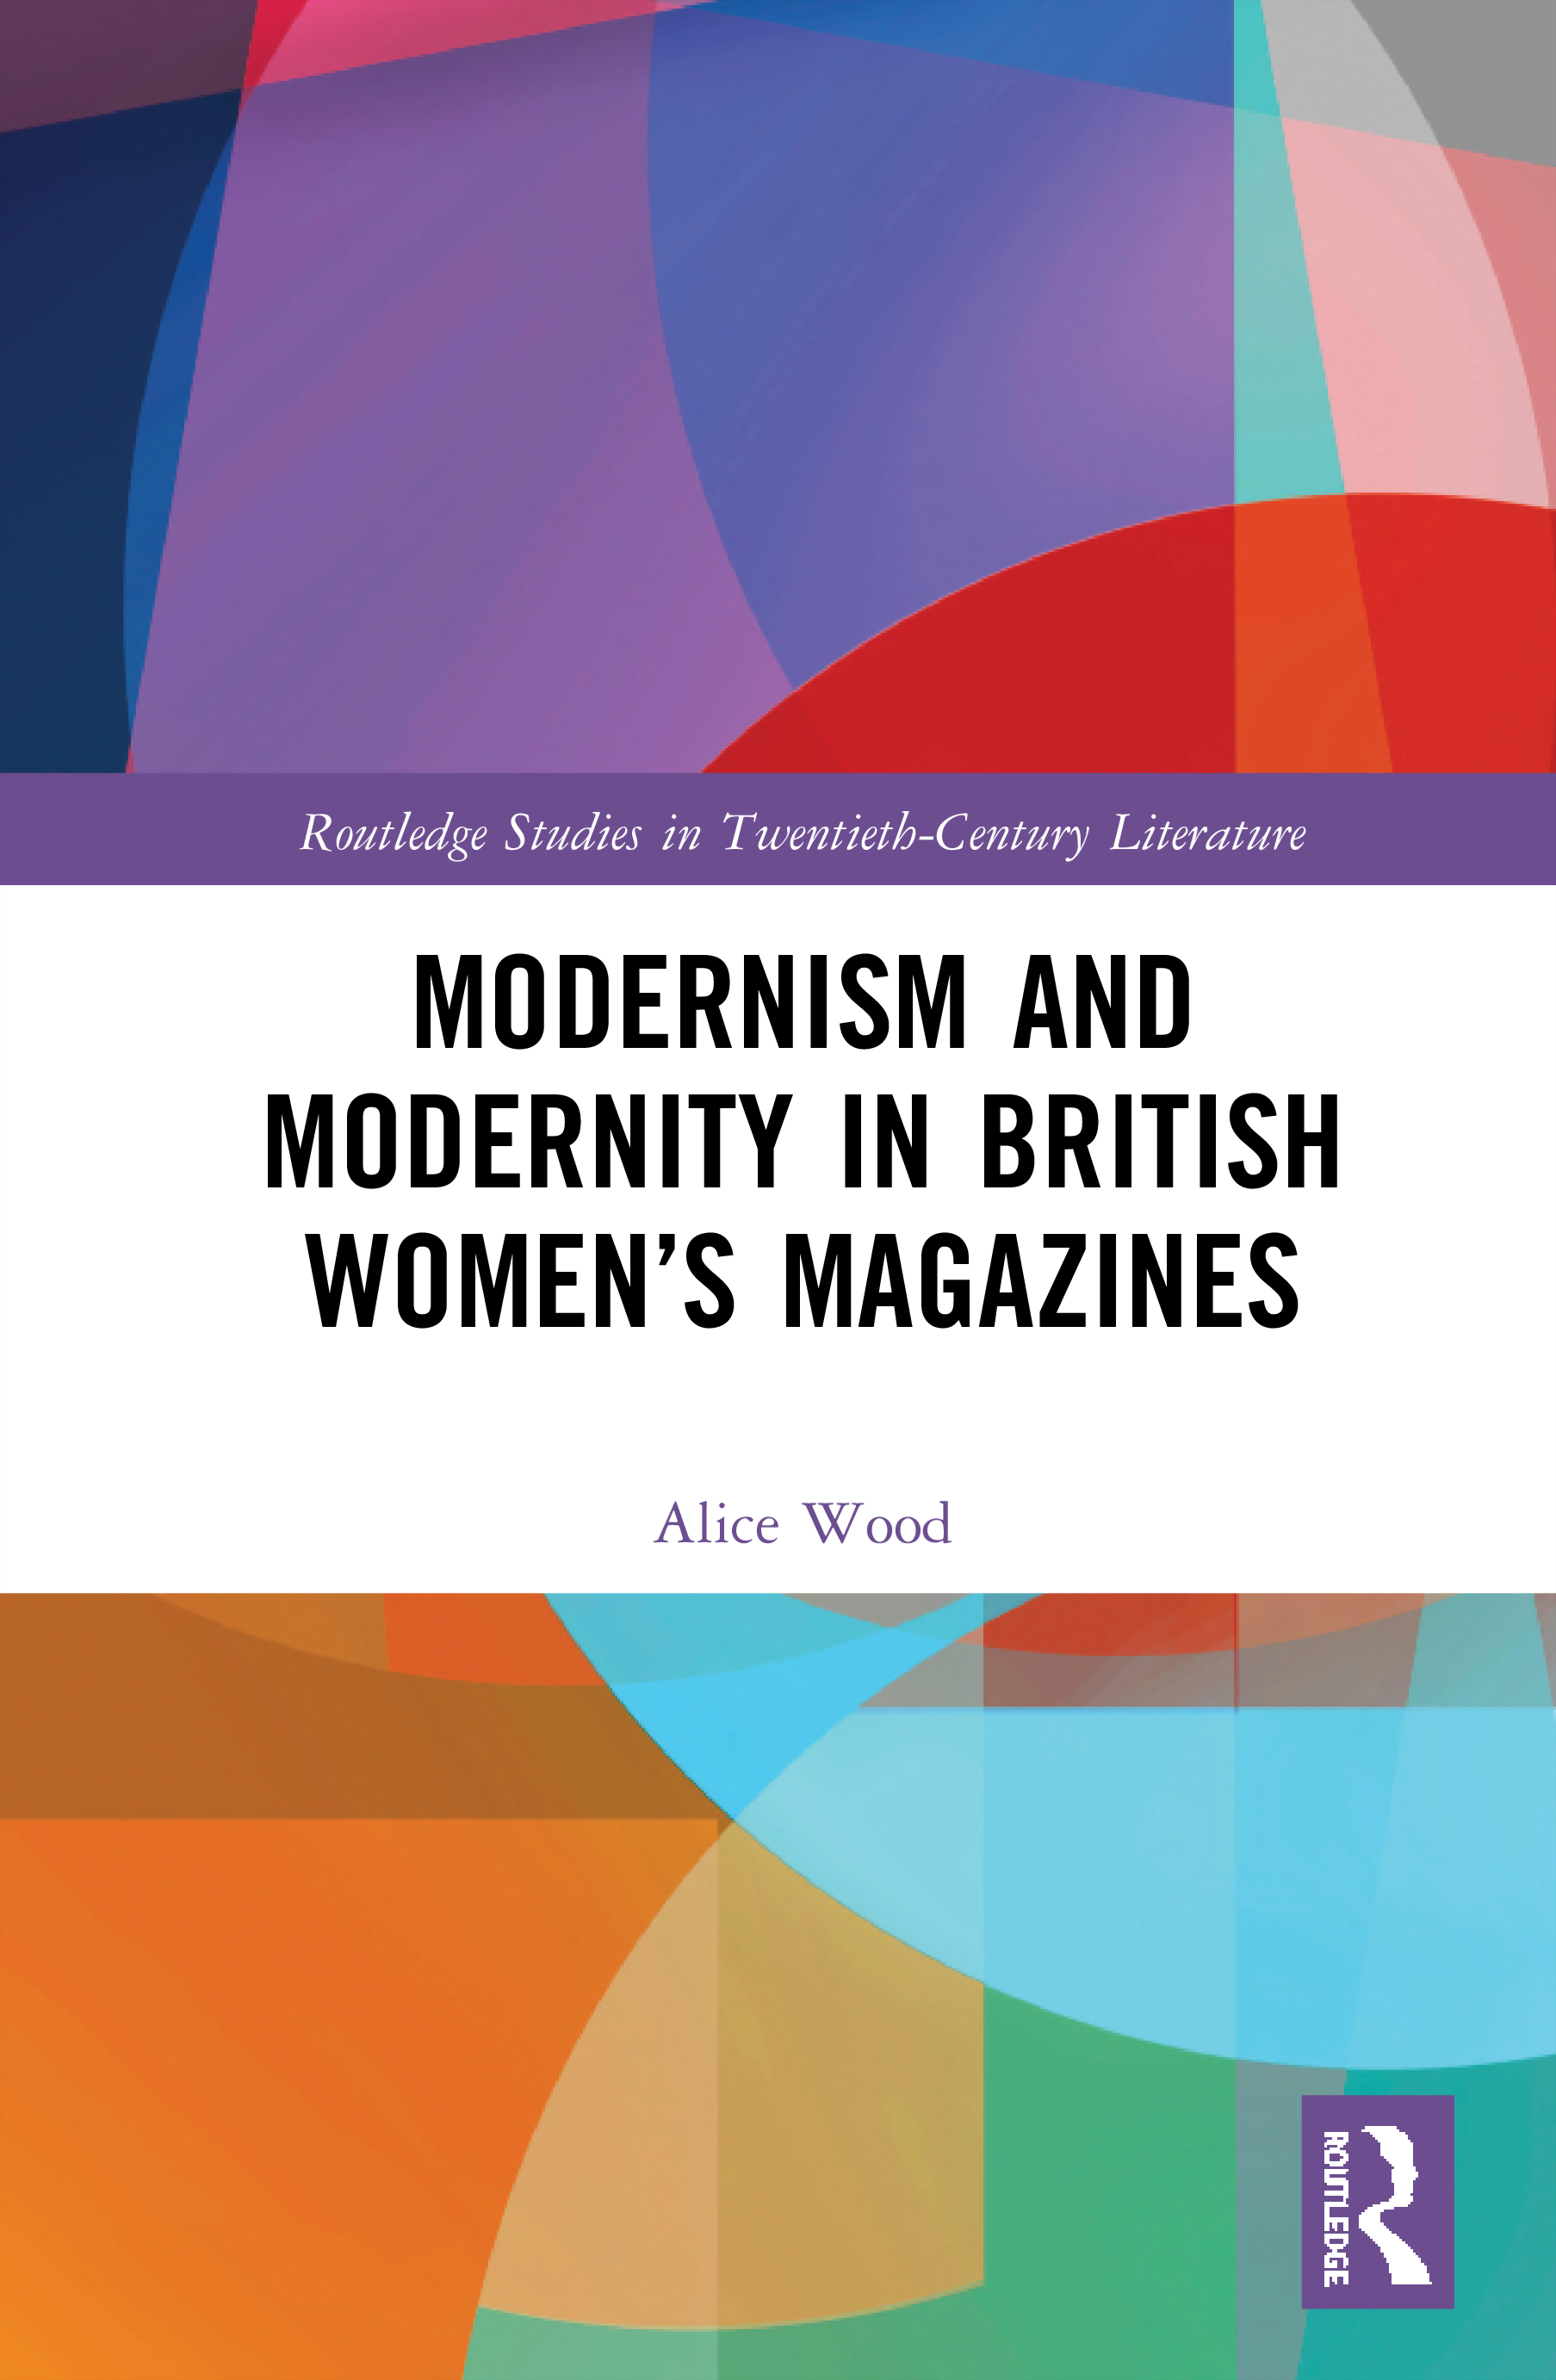 Modernism and Modernity in British Women's Magazines book cover